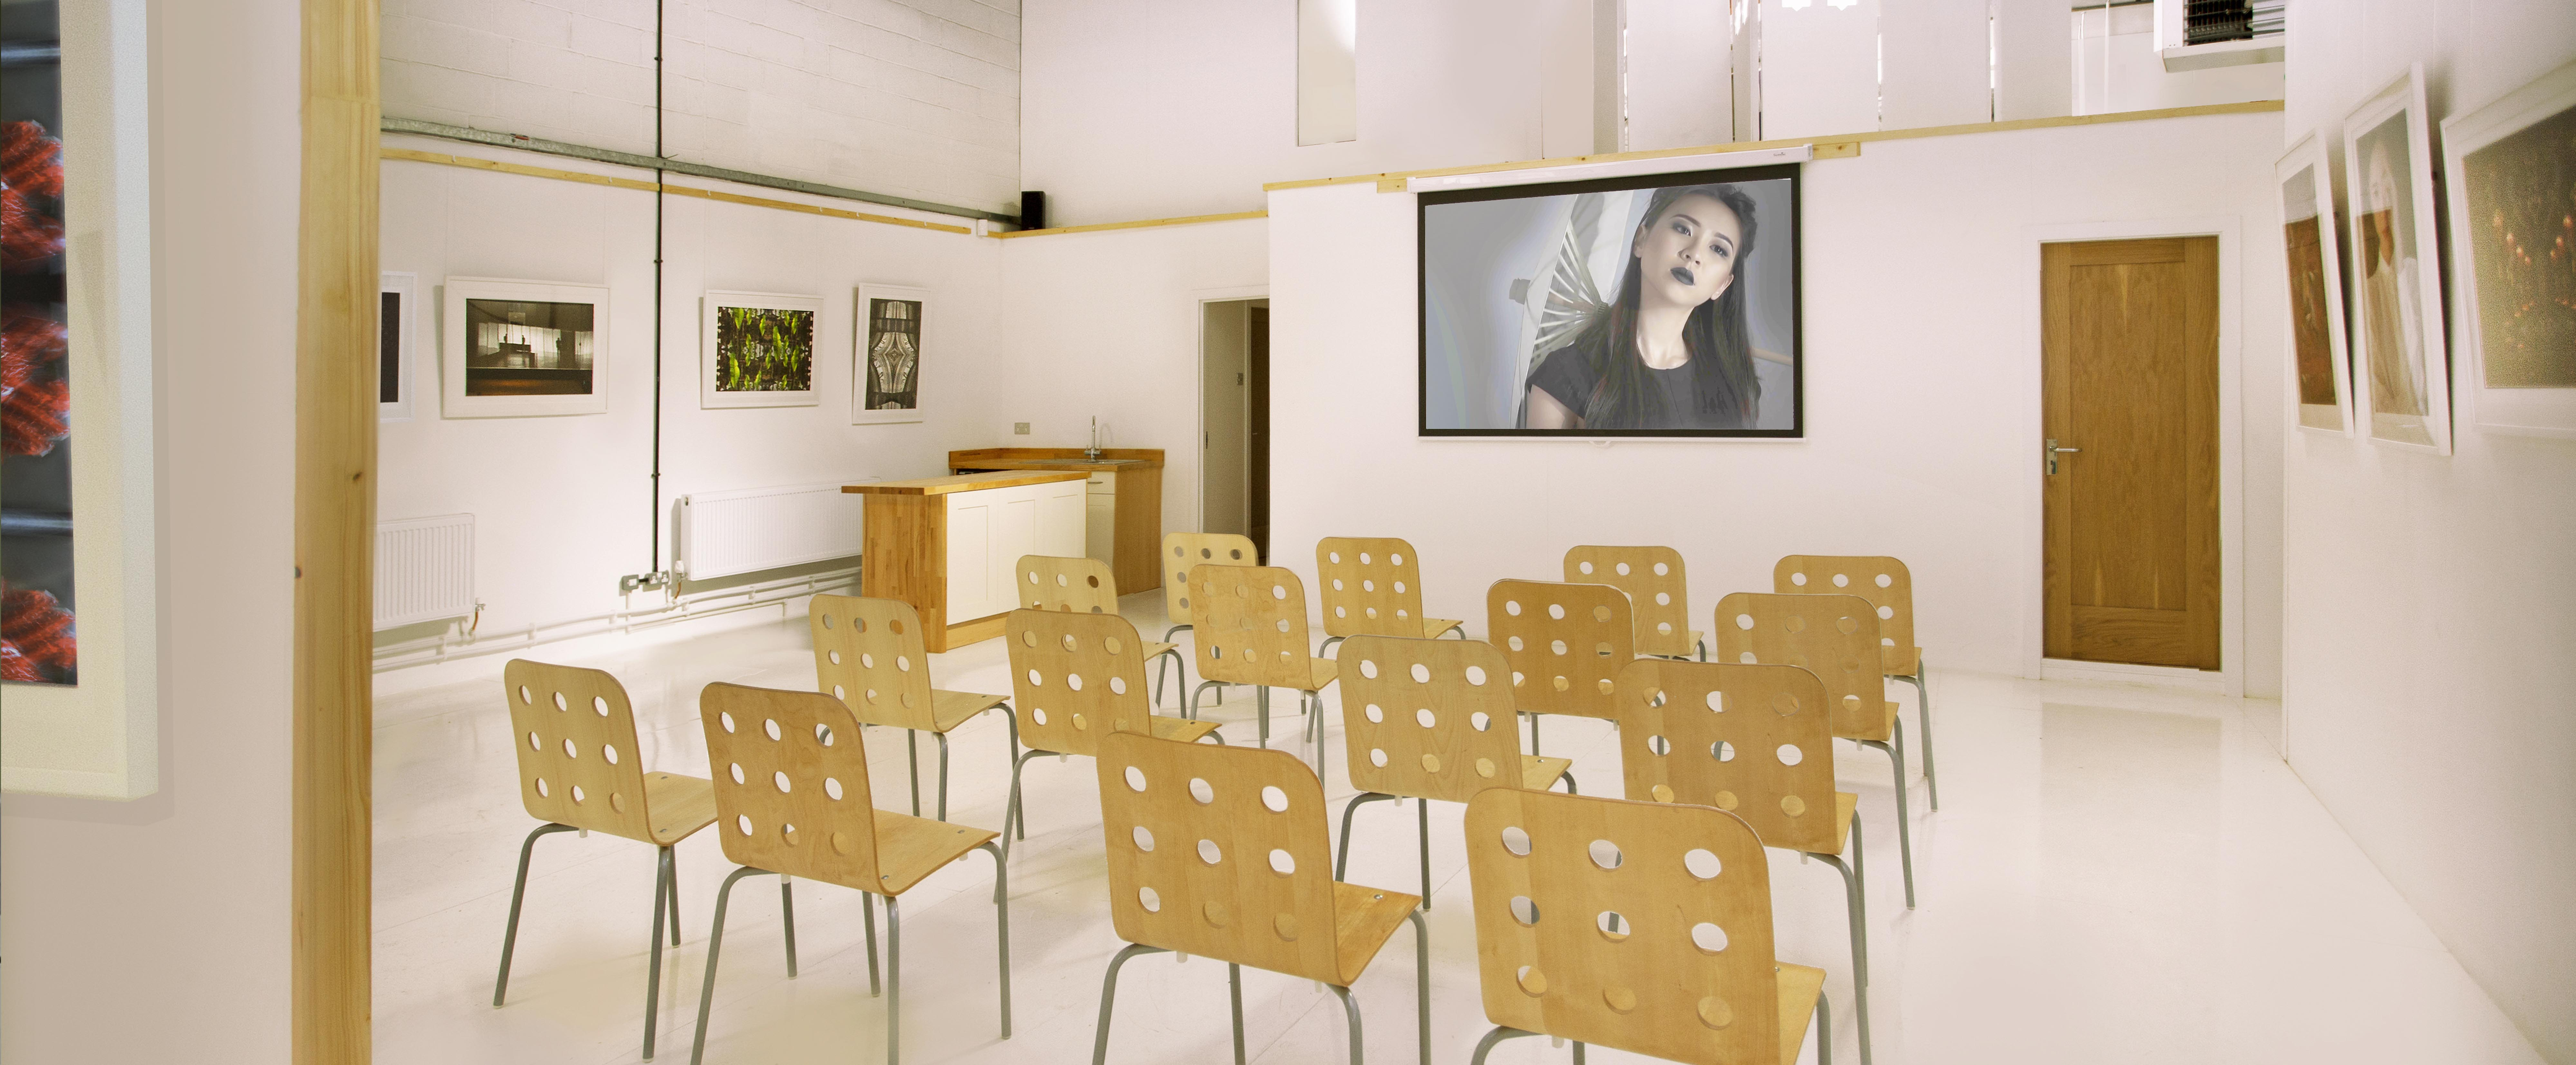 Rows of chairs facing a projector screen in the gallery